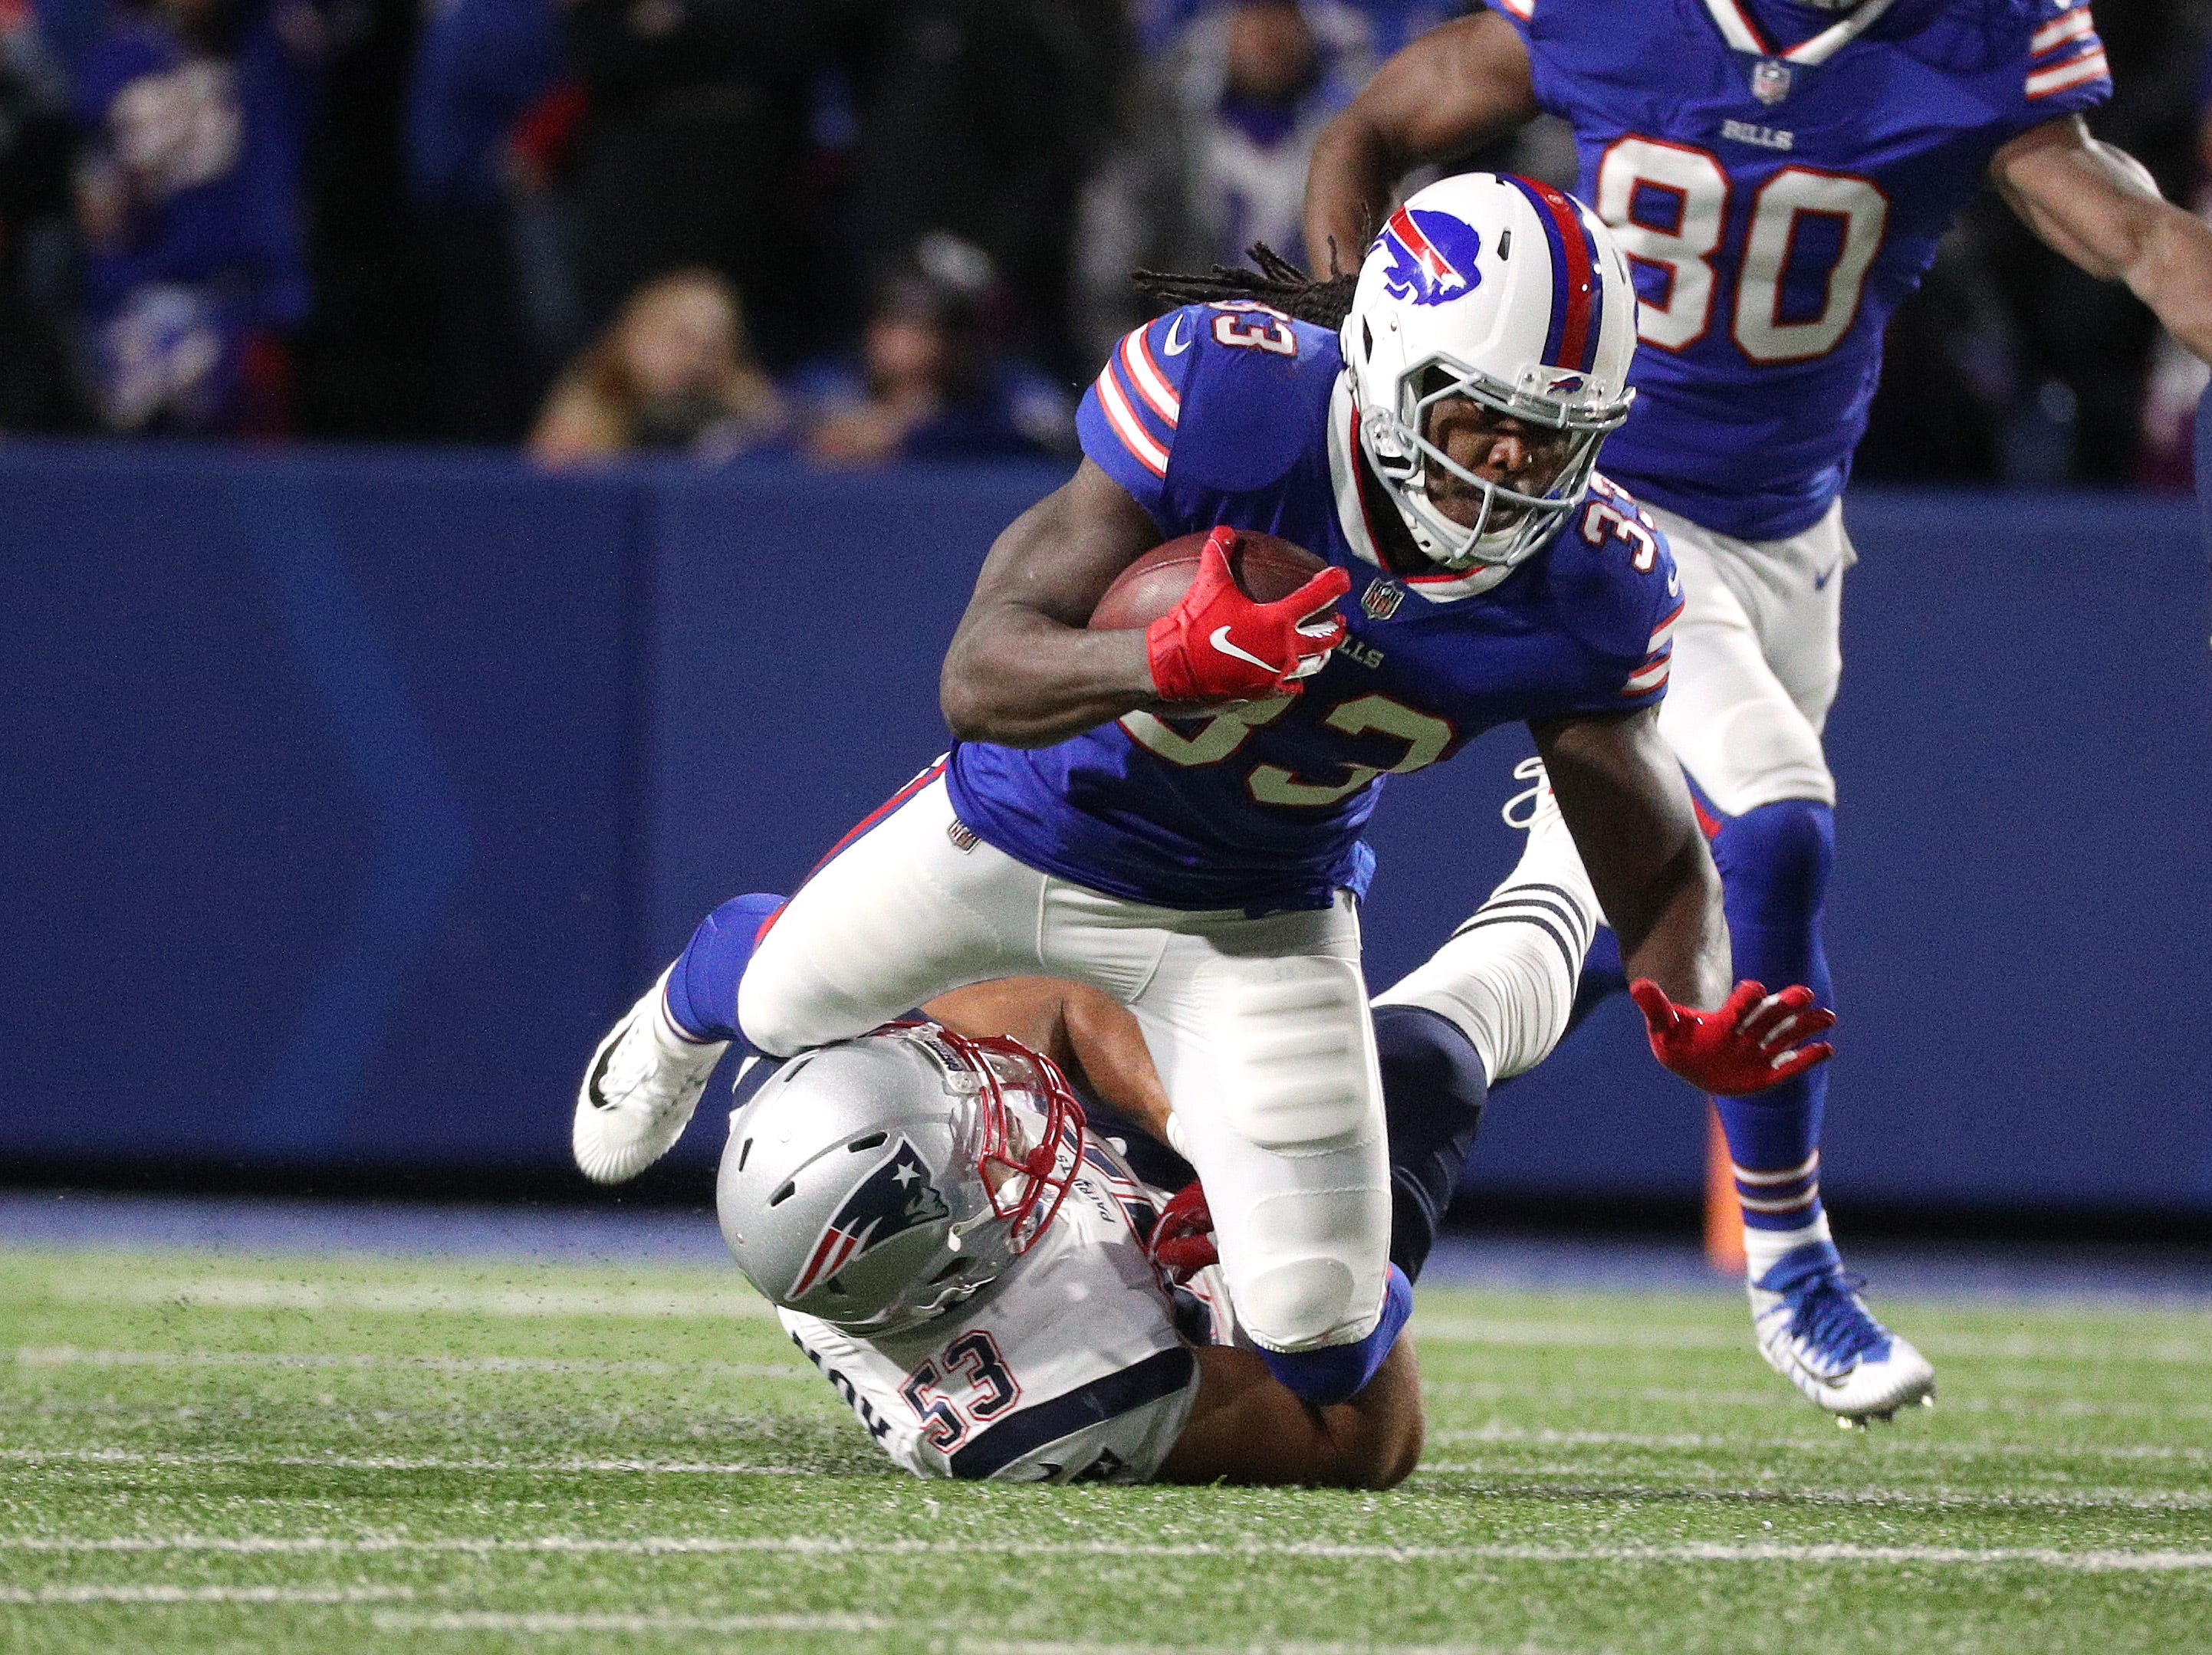 Bills running back Chris Ivory is tackled against the Patriots.